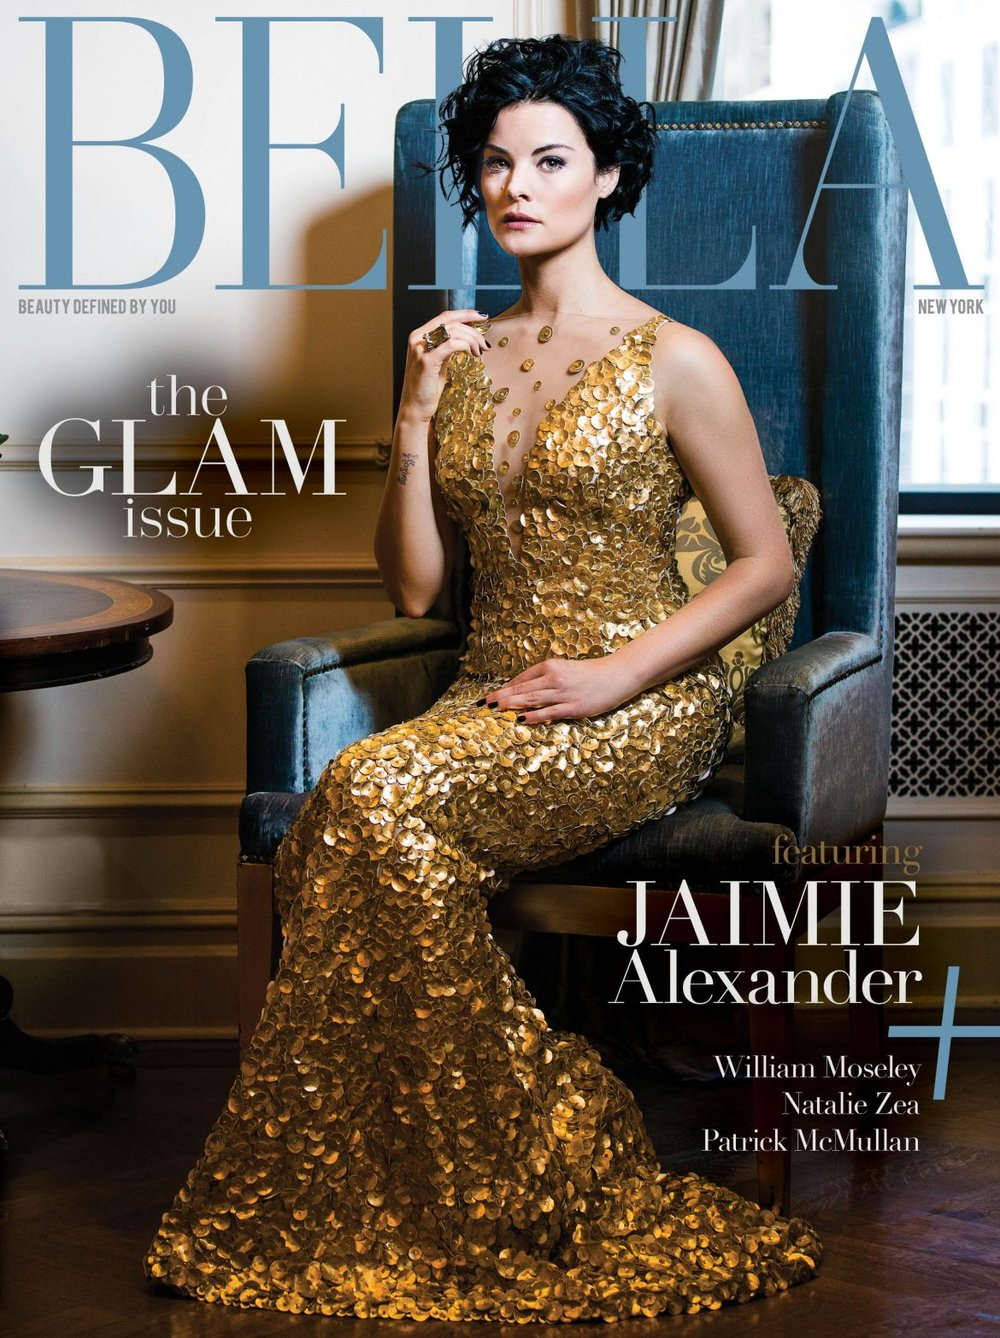 Jaimie Alexander for Bella New York Magazine January/February 2017.